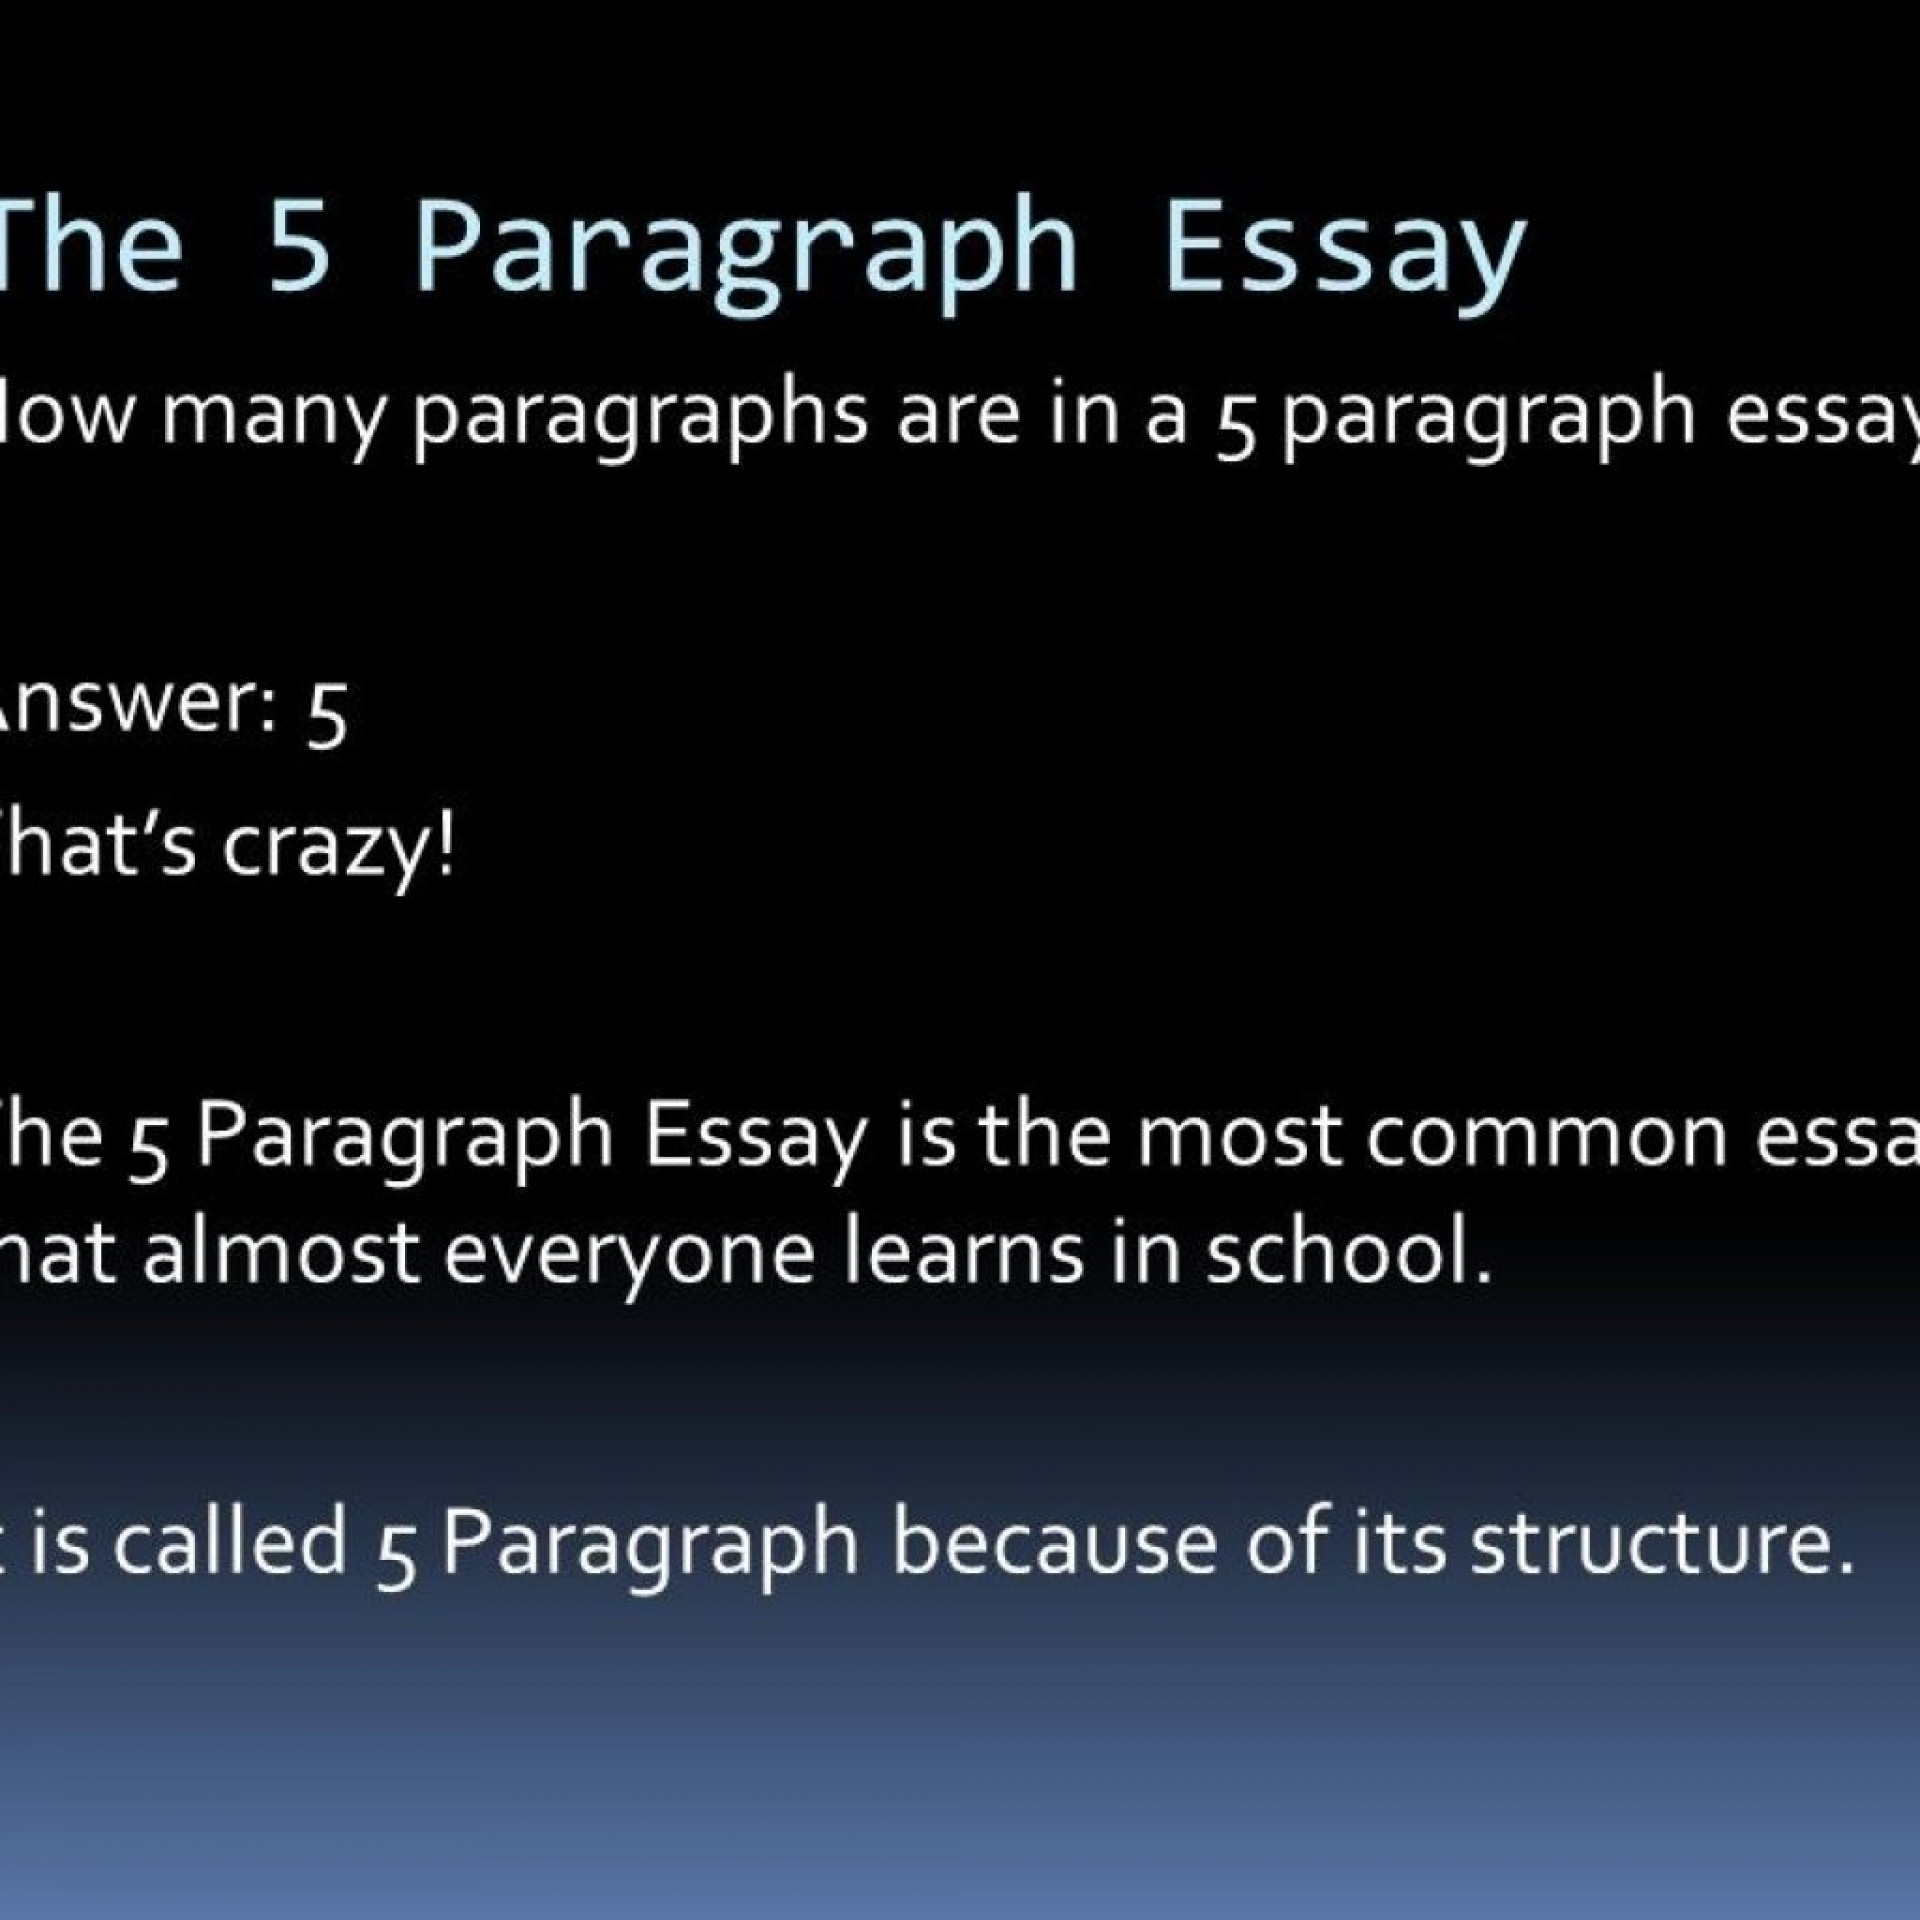 001 Essay Example How Many Sentences Are In 2867177336 Best A Much Make Paragraph An 250 Word 1920